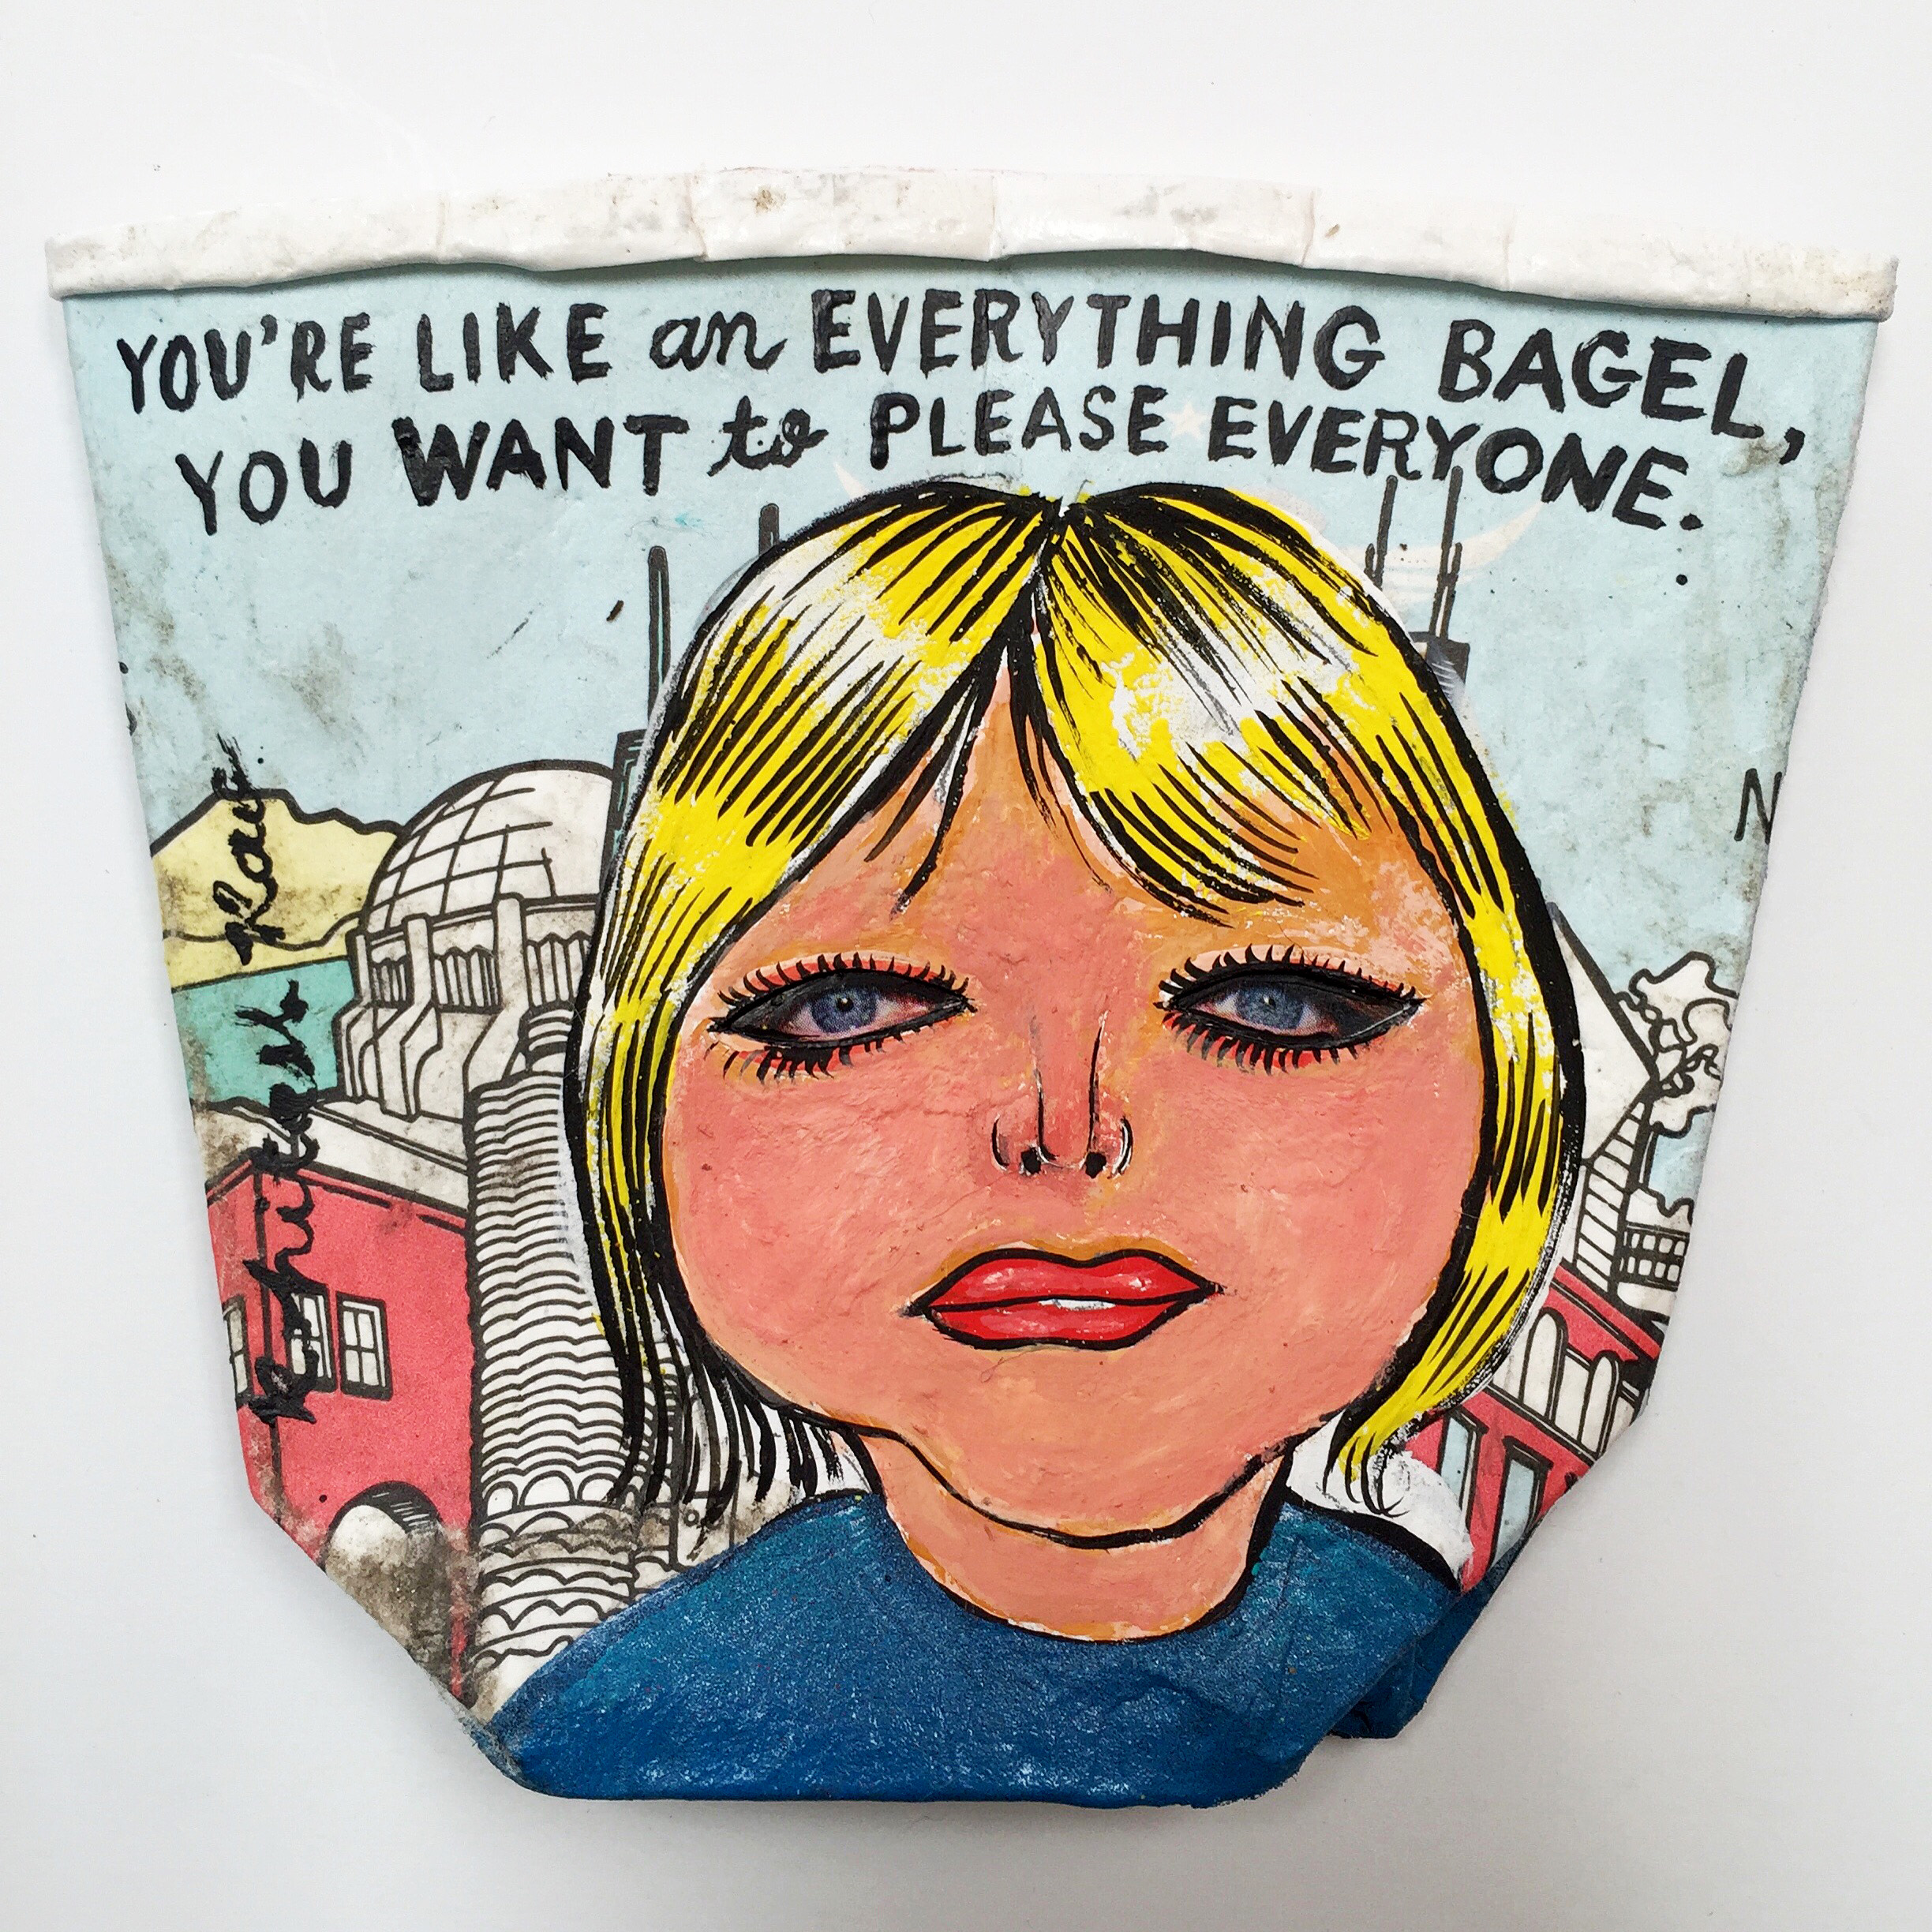 YOU'RE LIKE AN EVERYTHING BAGEL